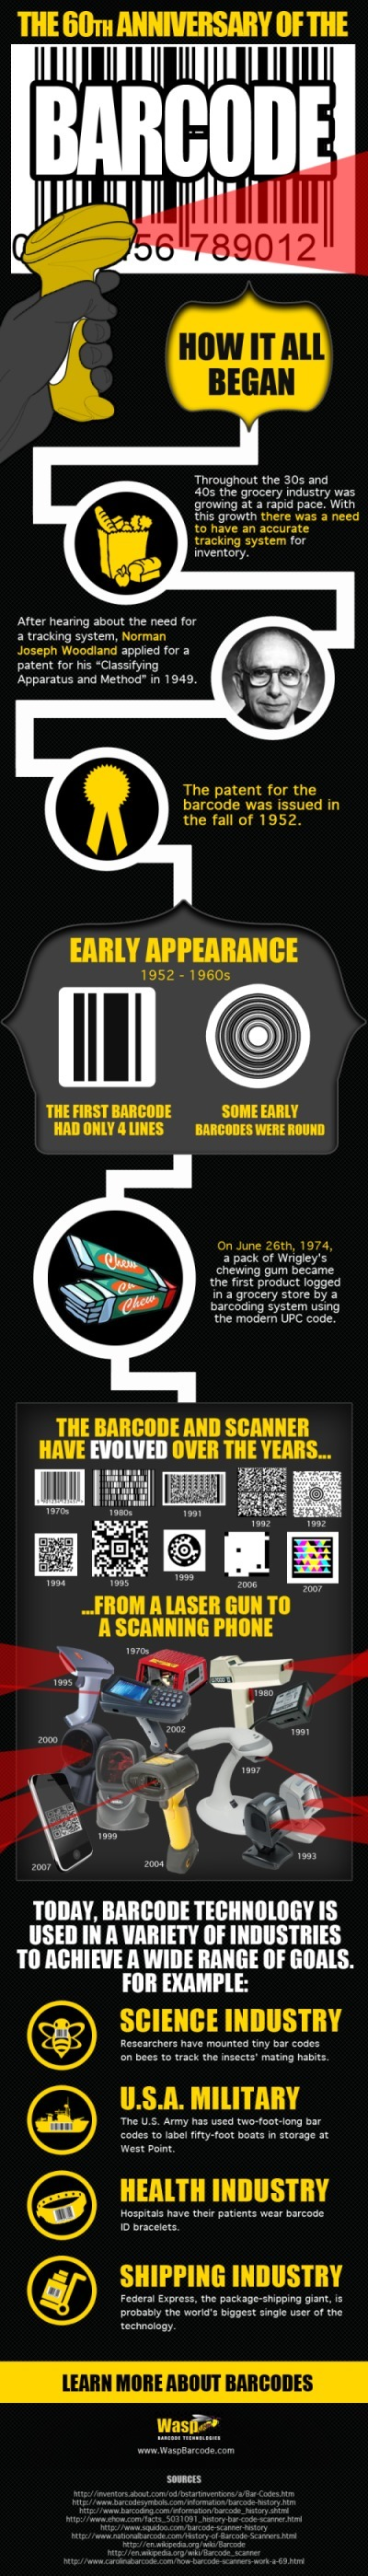 60th Anniversary of the BarCode - Blog - Cool Infographics | Librarians in the real world | Scoop.it